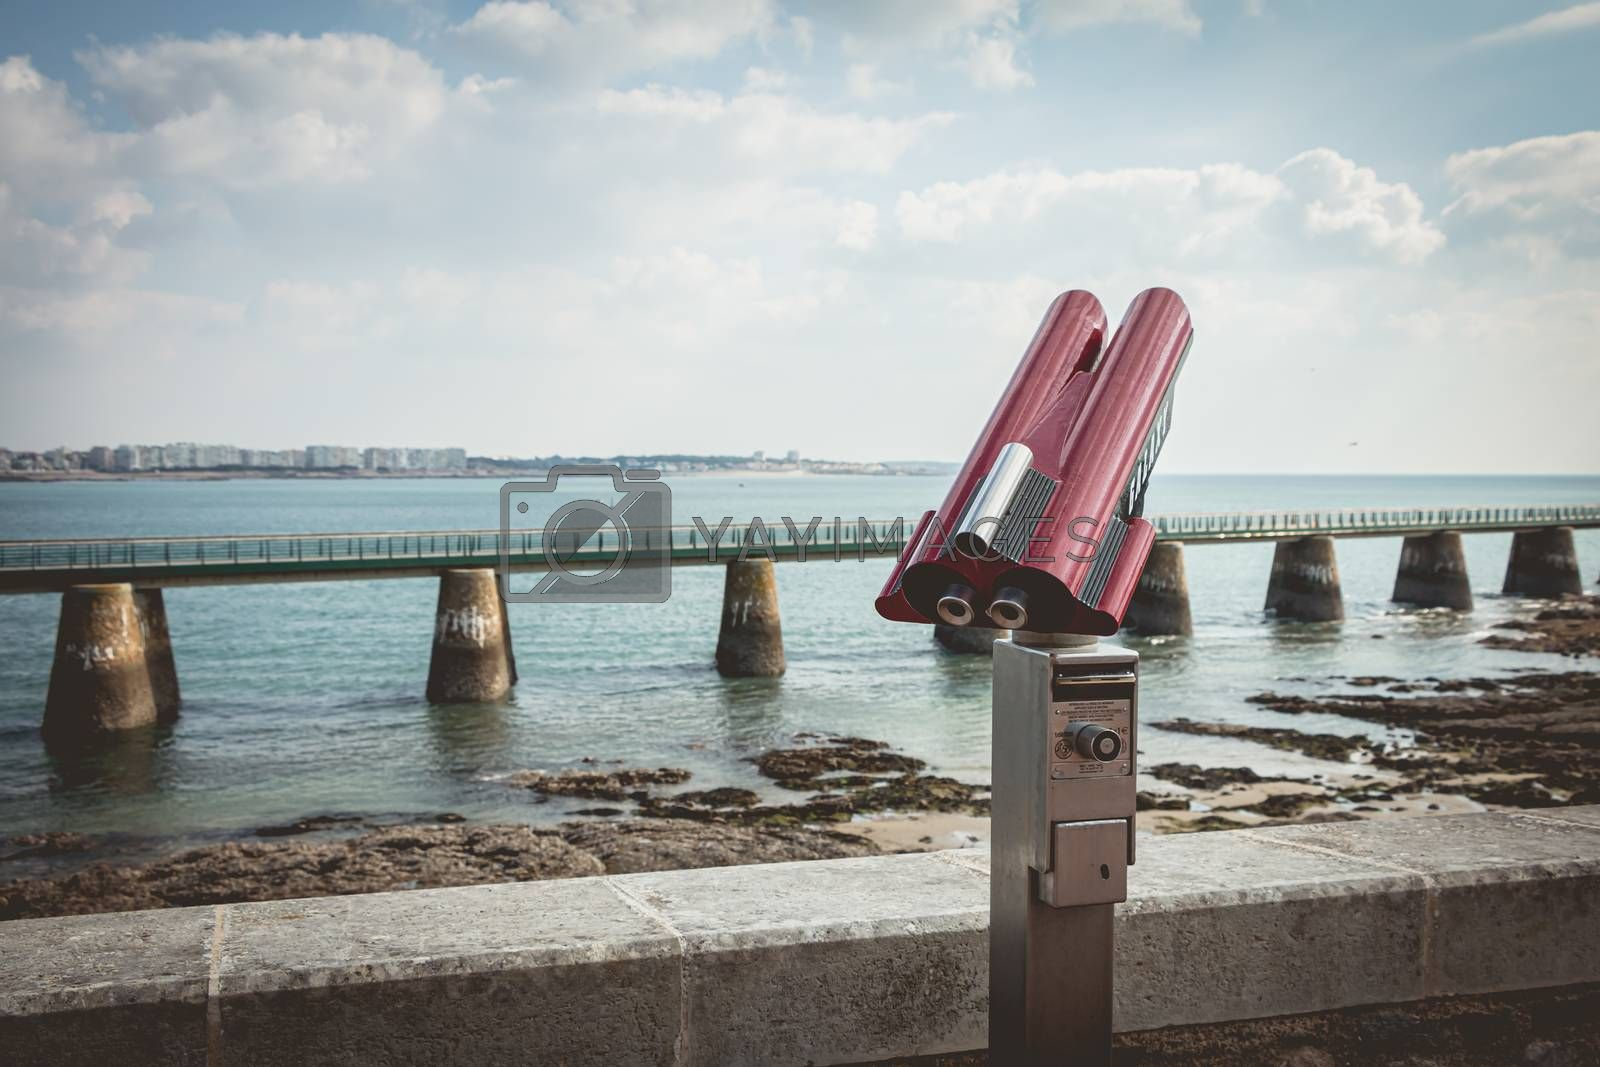 Sables d Olonne, France - October 13, 2015 : binocular telescope for tourist pointed to the beach on a fall day